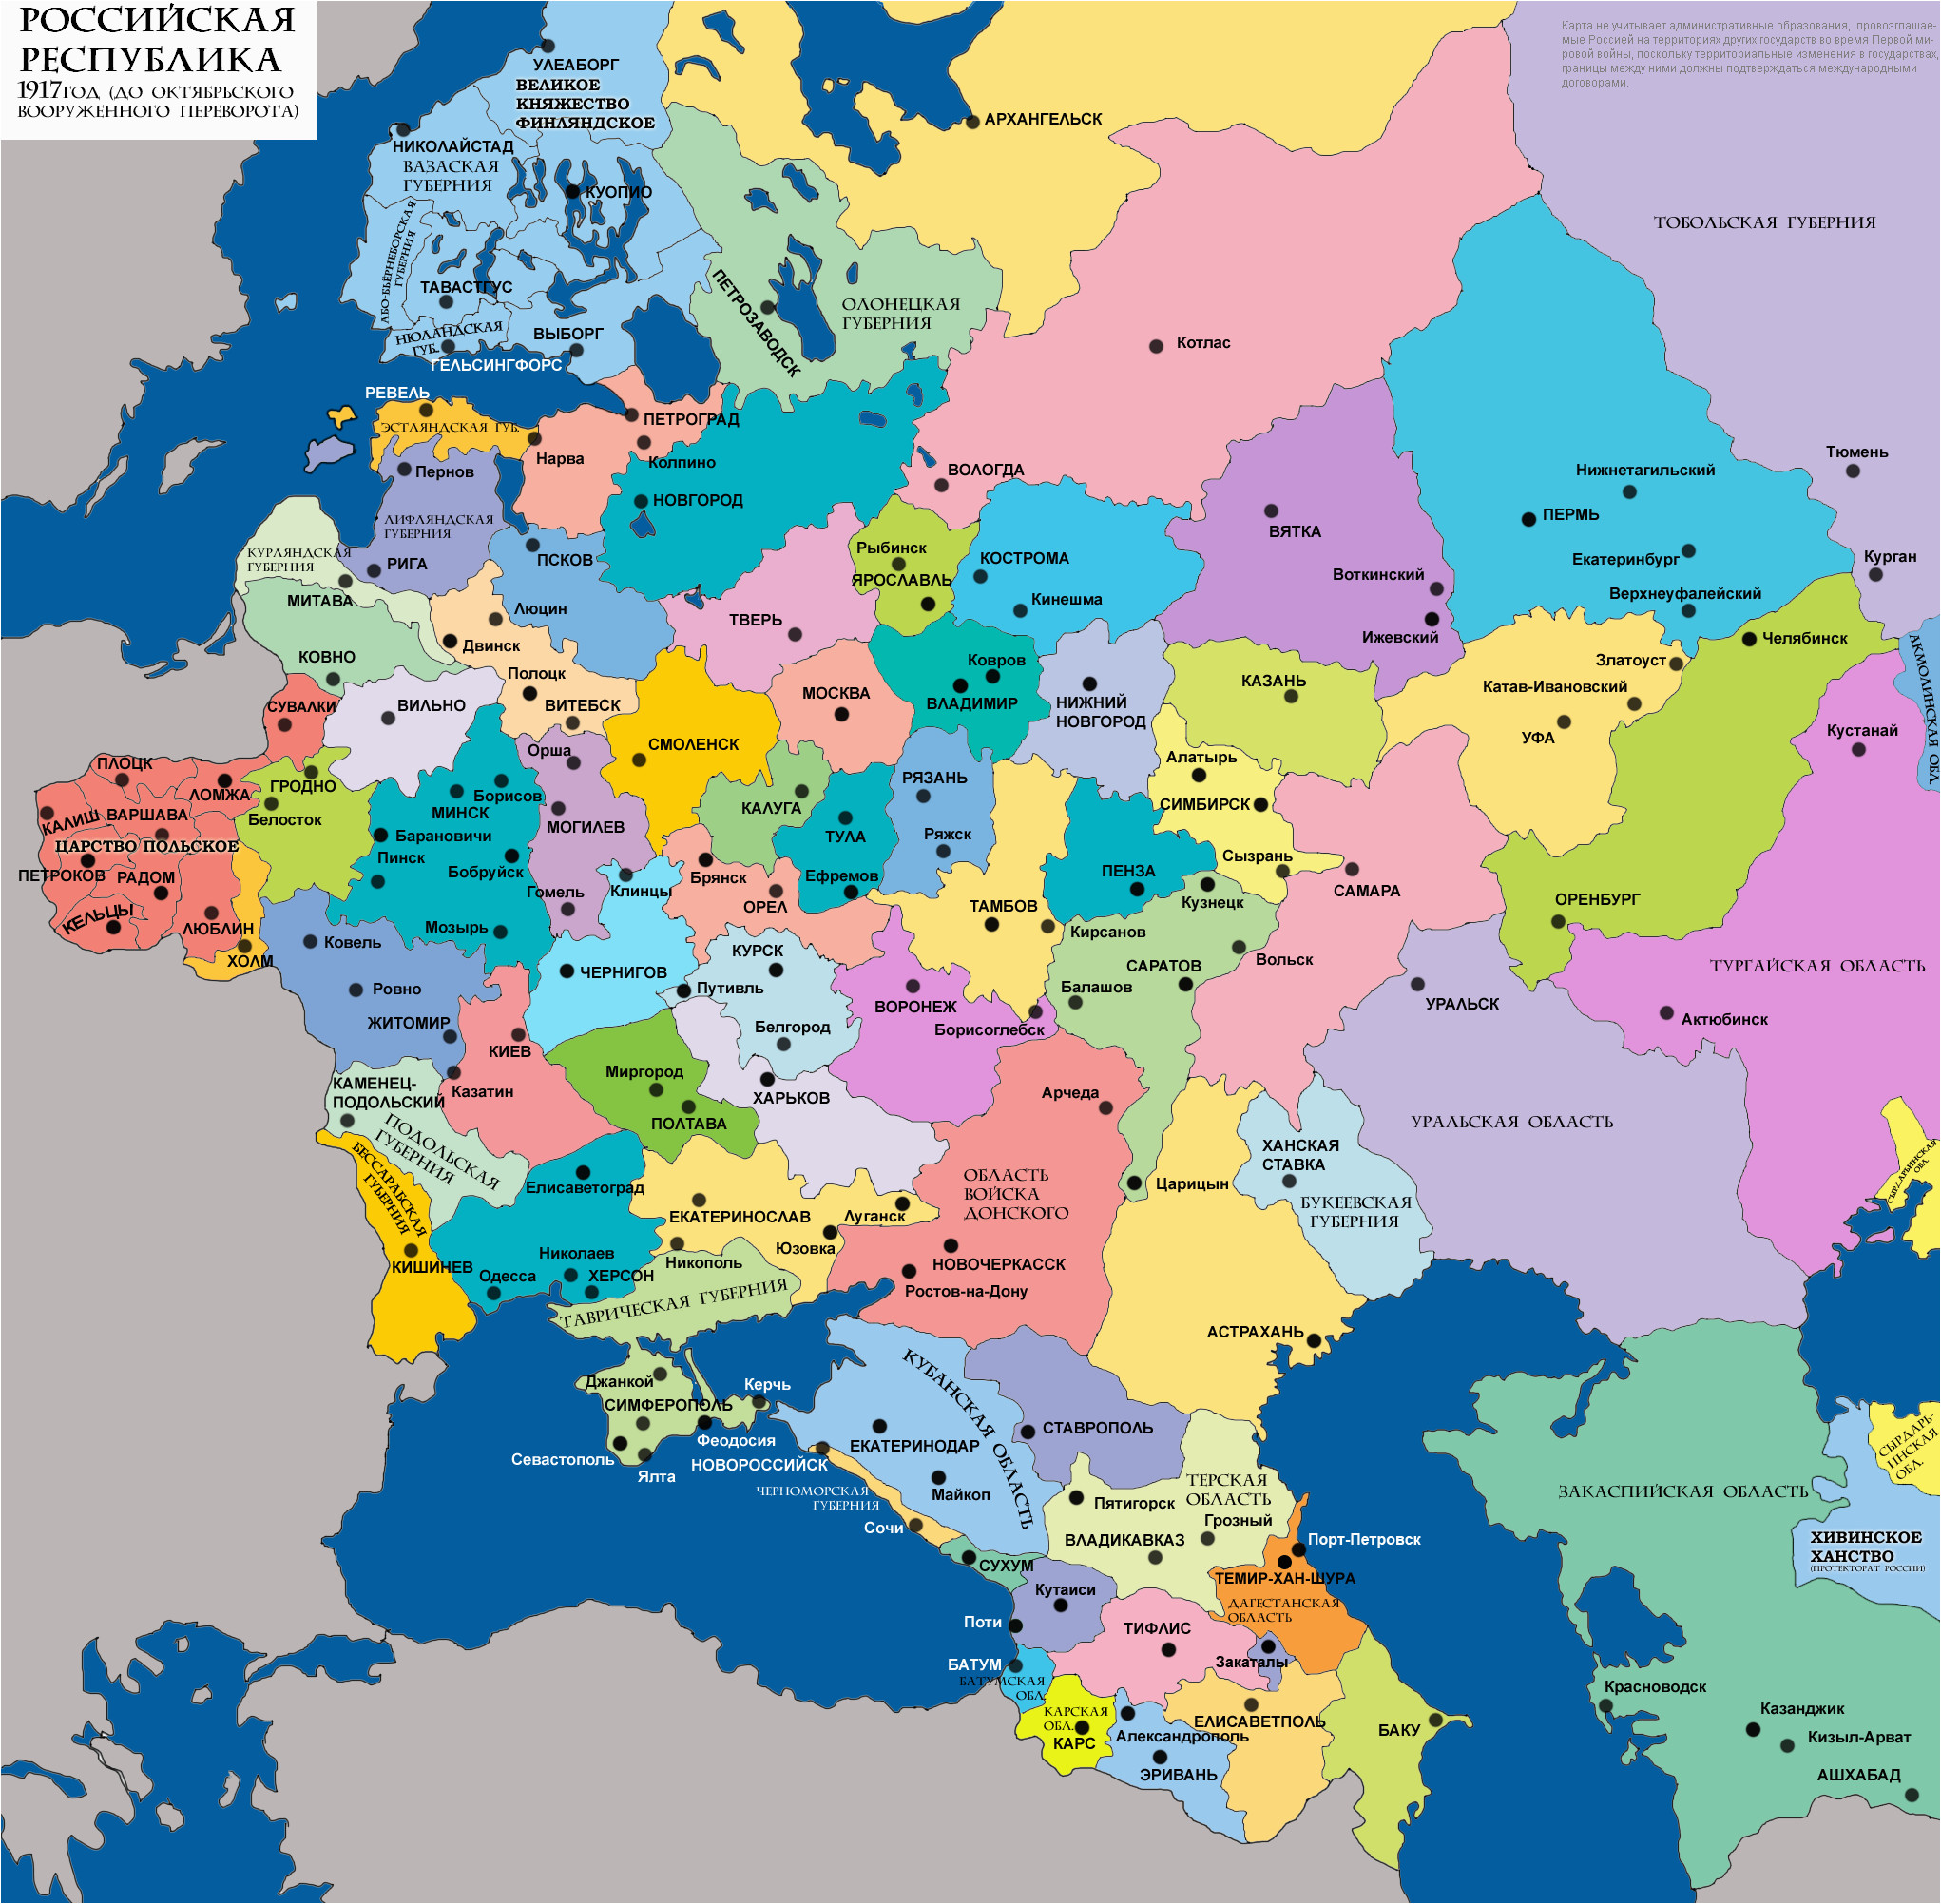 Map Of Europe 1917 European Governates Of the Russian Empire In 1917 In